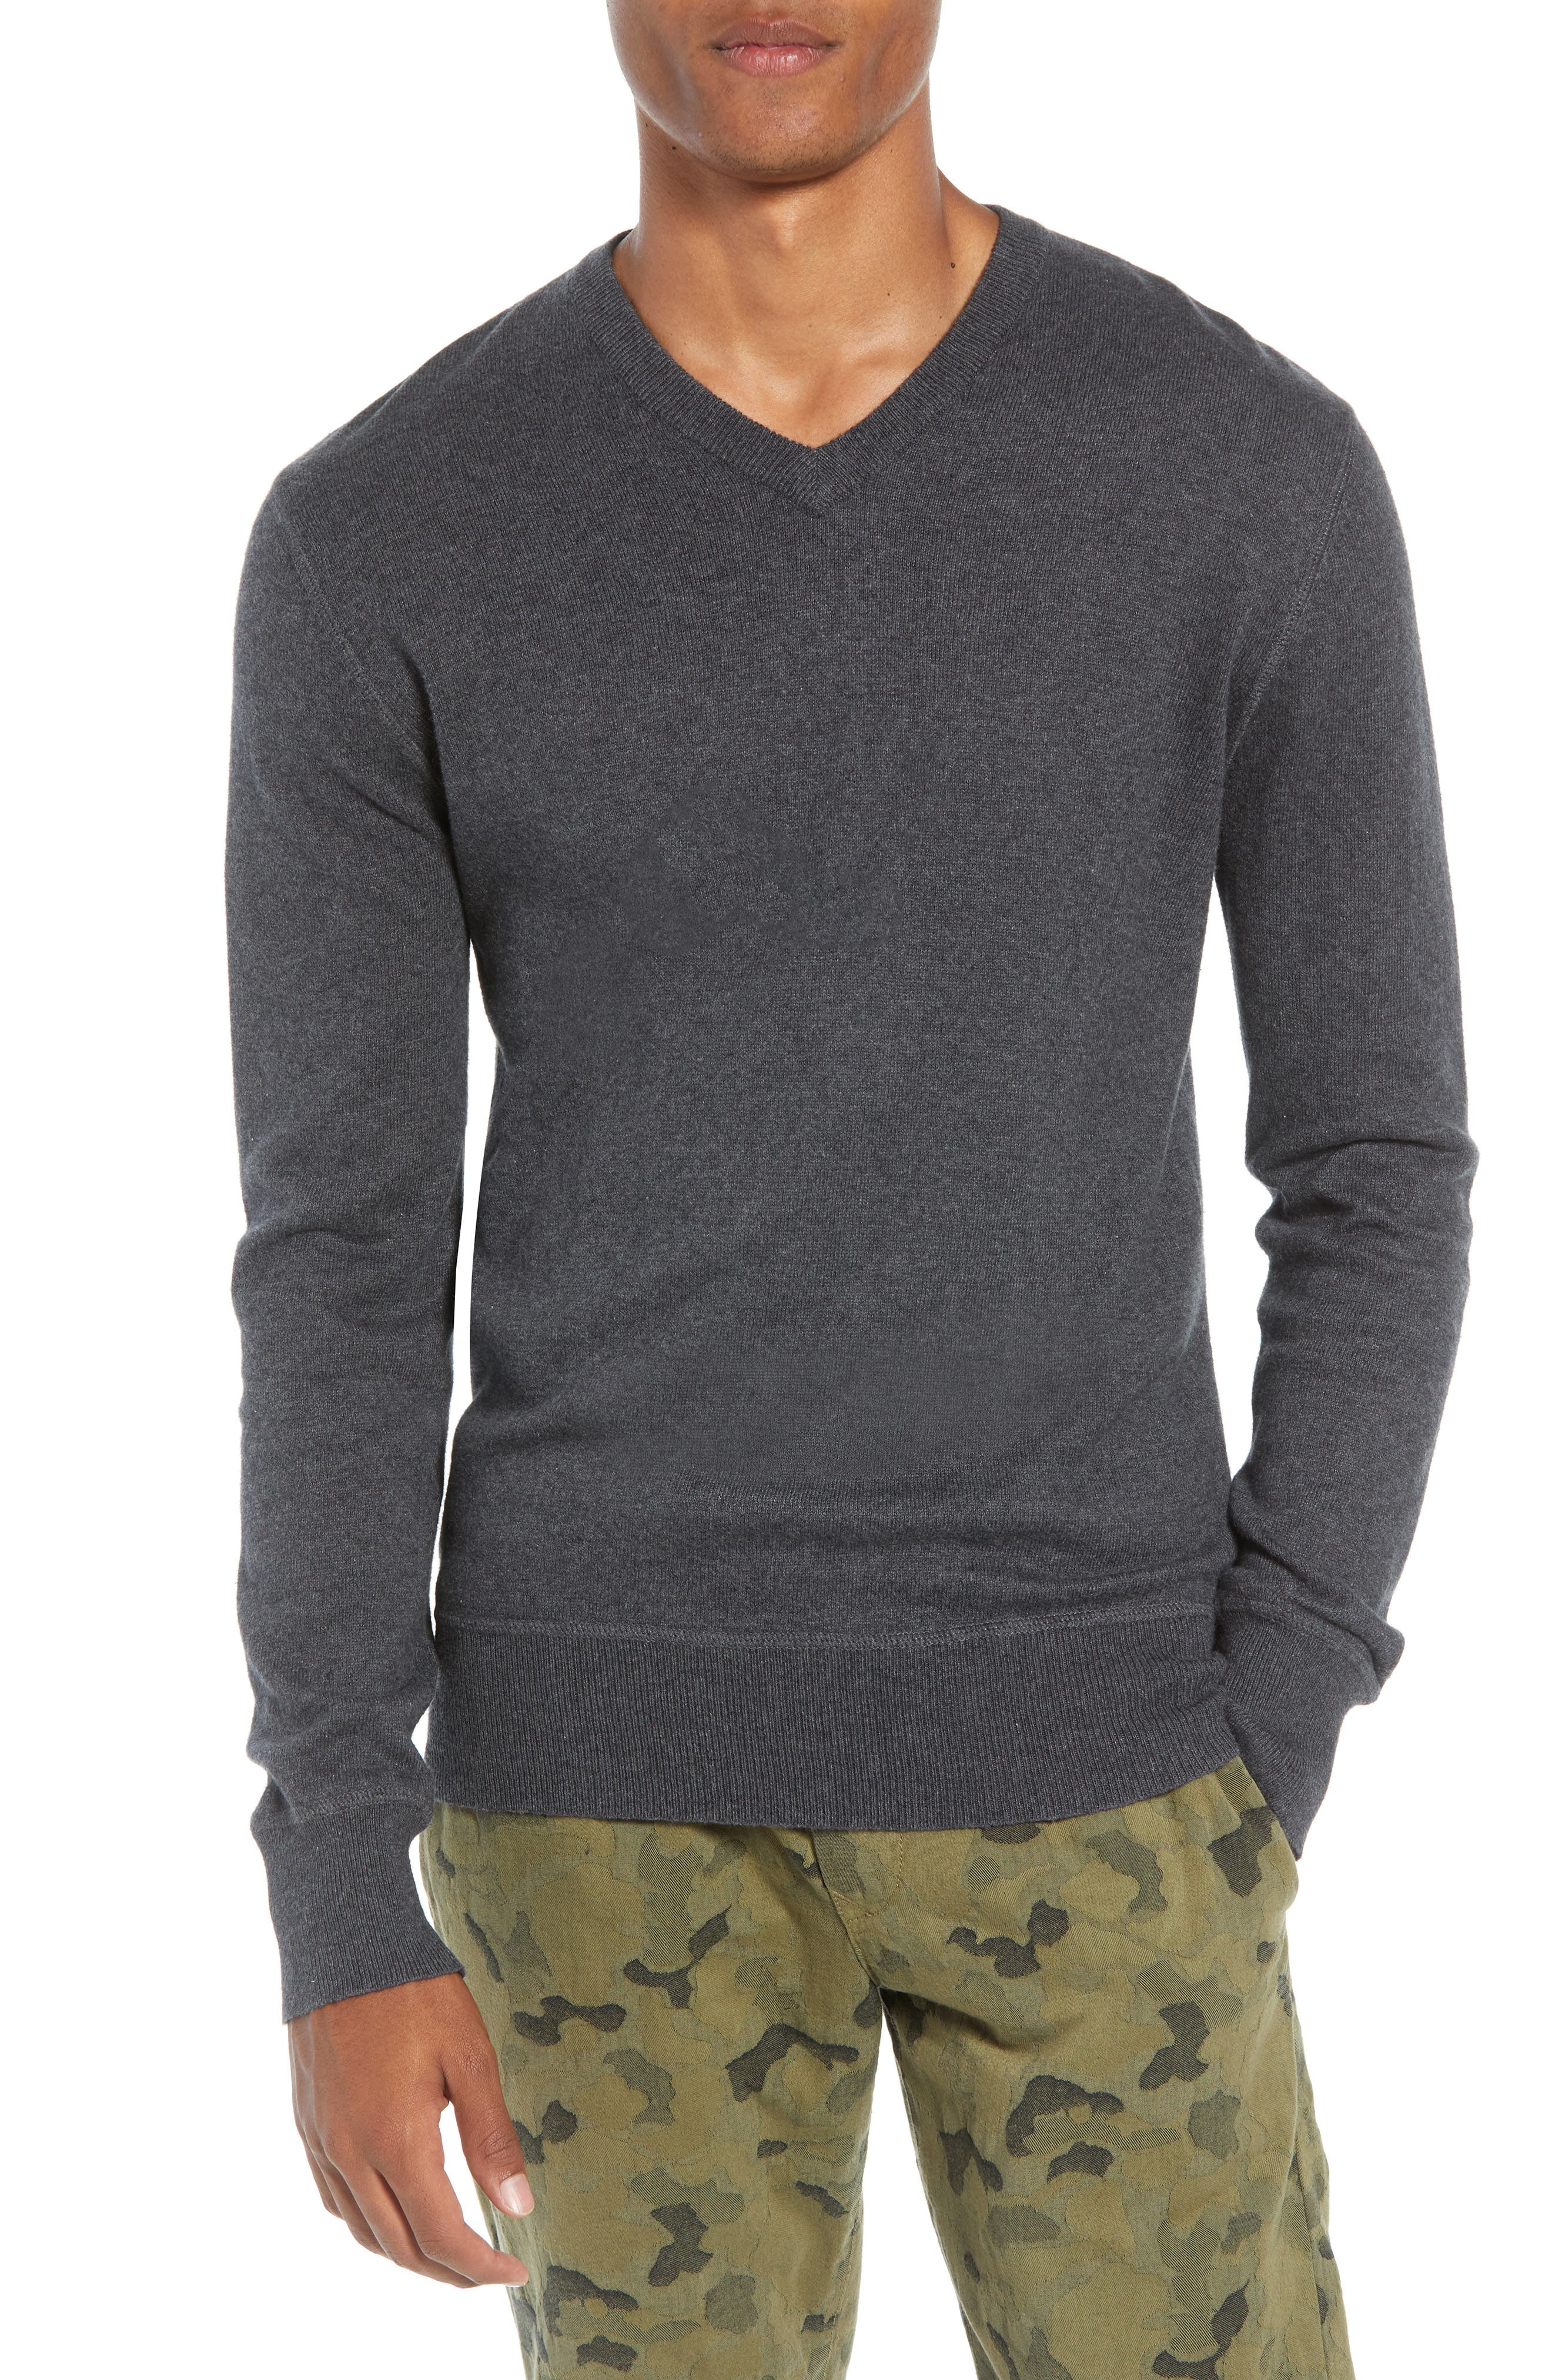 Tournament Slim Fit V-Neck Sweater,                         Main,                         color, HEATHER CHARCOAL